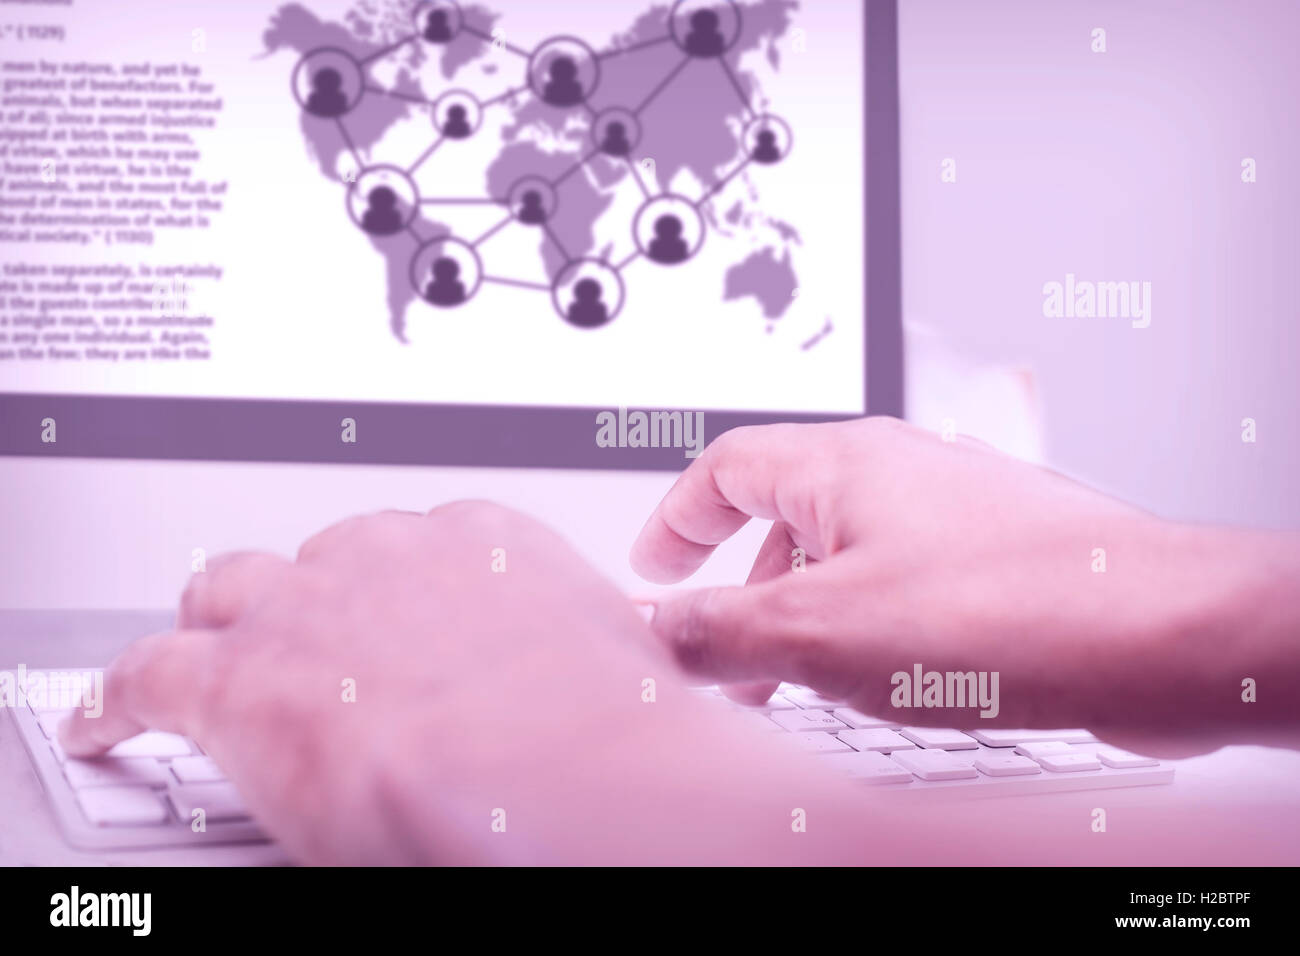 Hacker hacking highly secure system. Computer crime concept - Stock Image